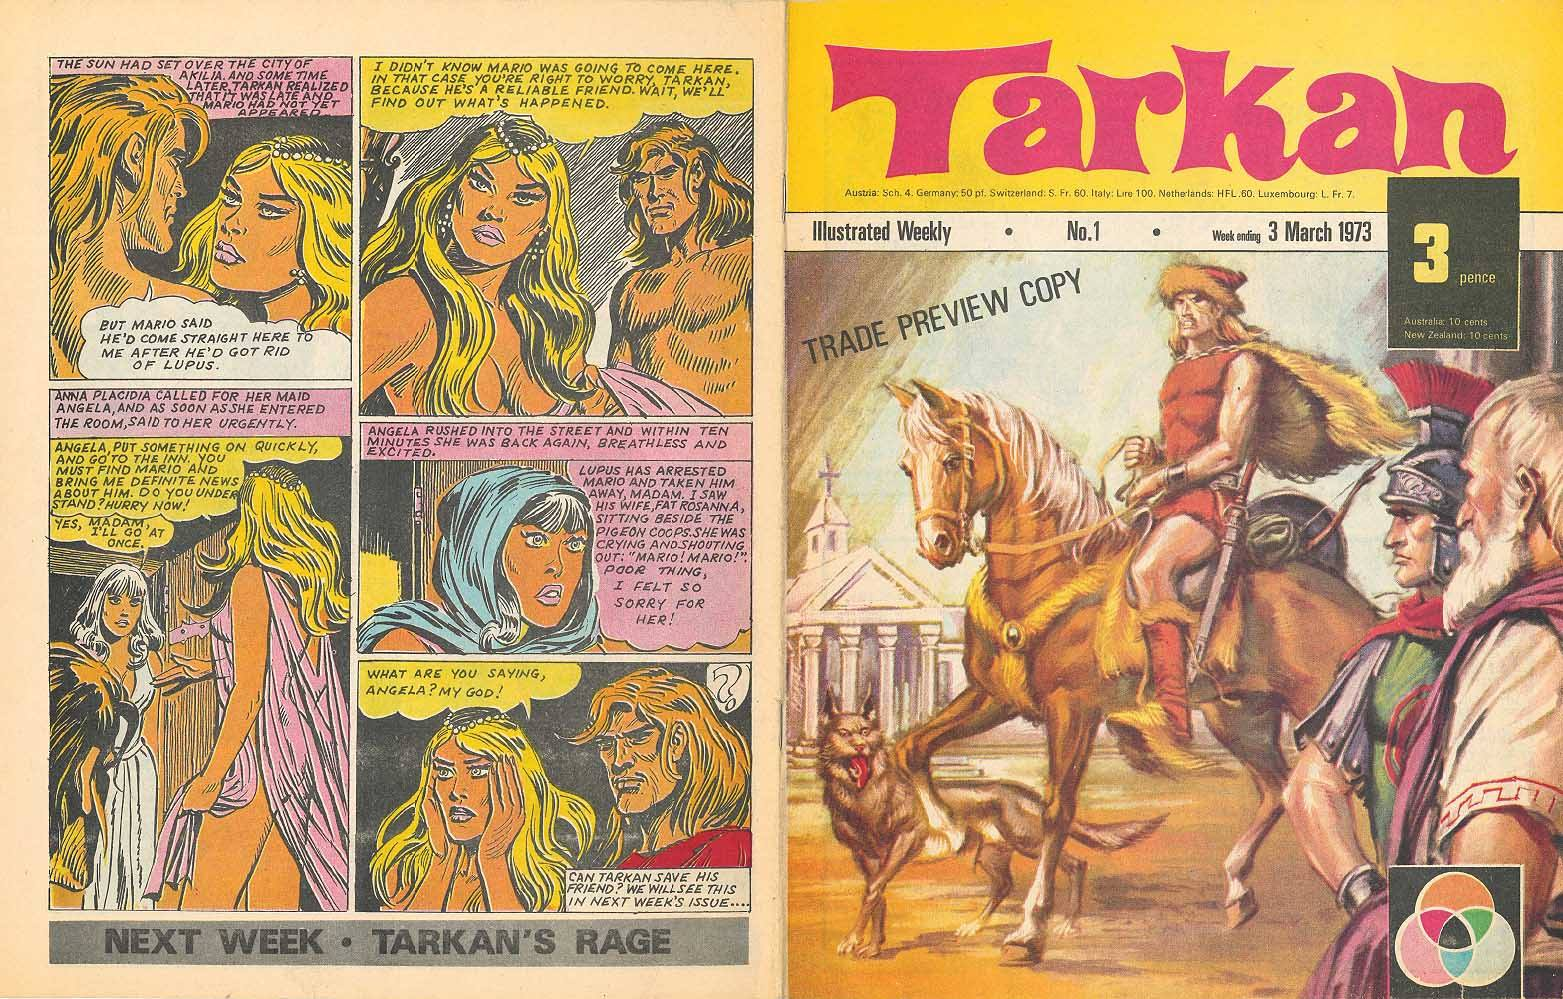 Preview pages of Tarkan #1, published in 1973 - a British reprint of a Turkish hero